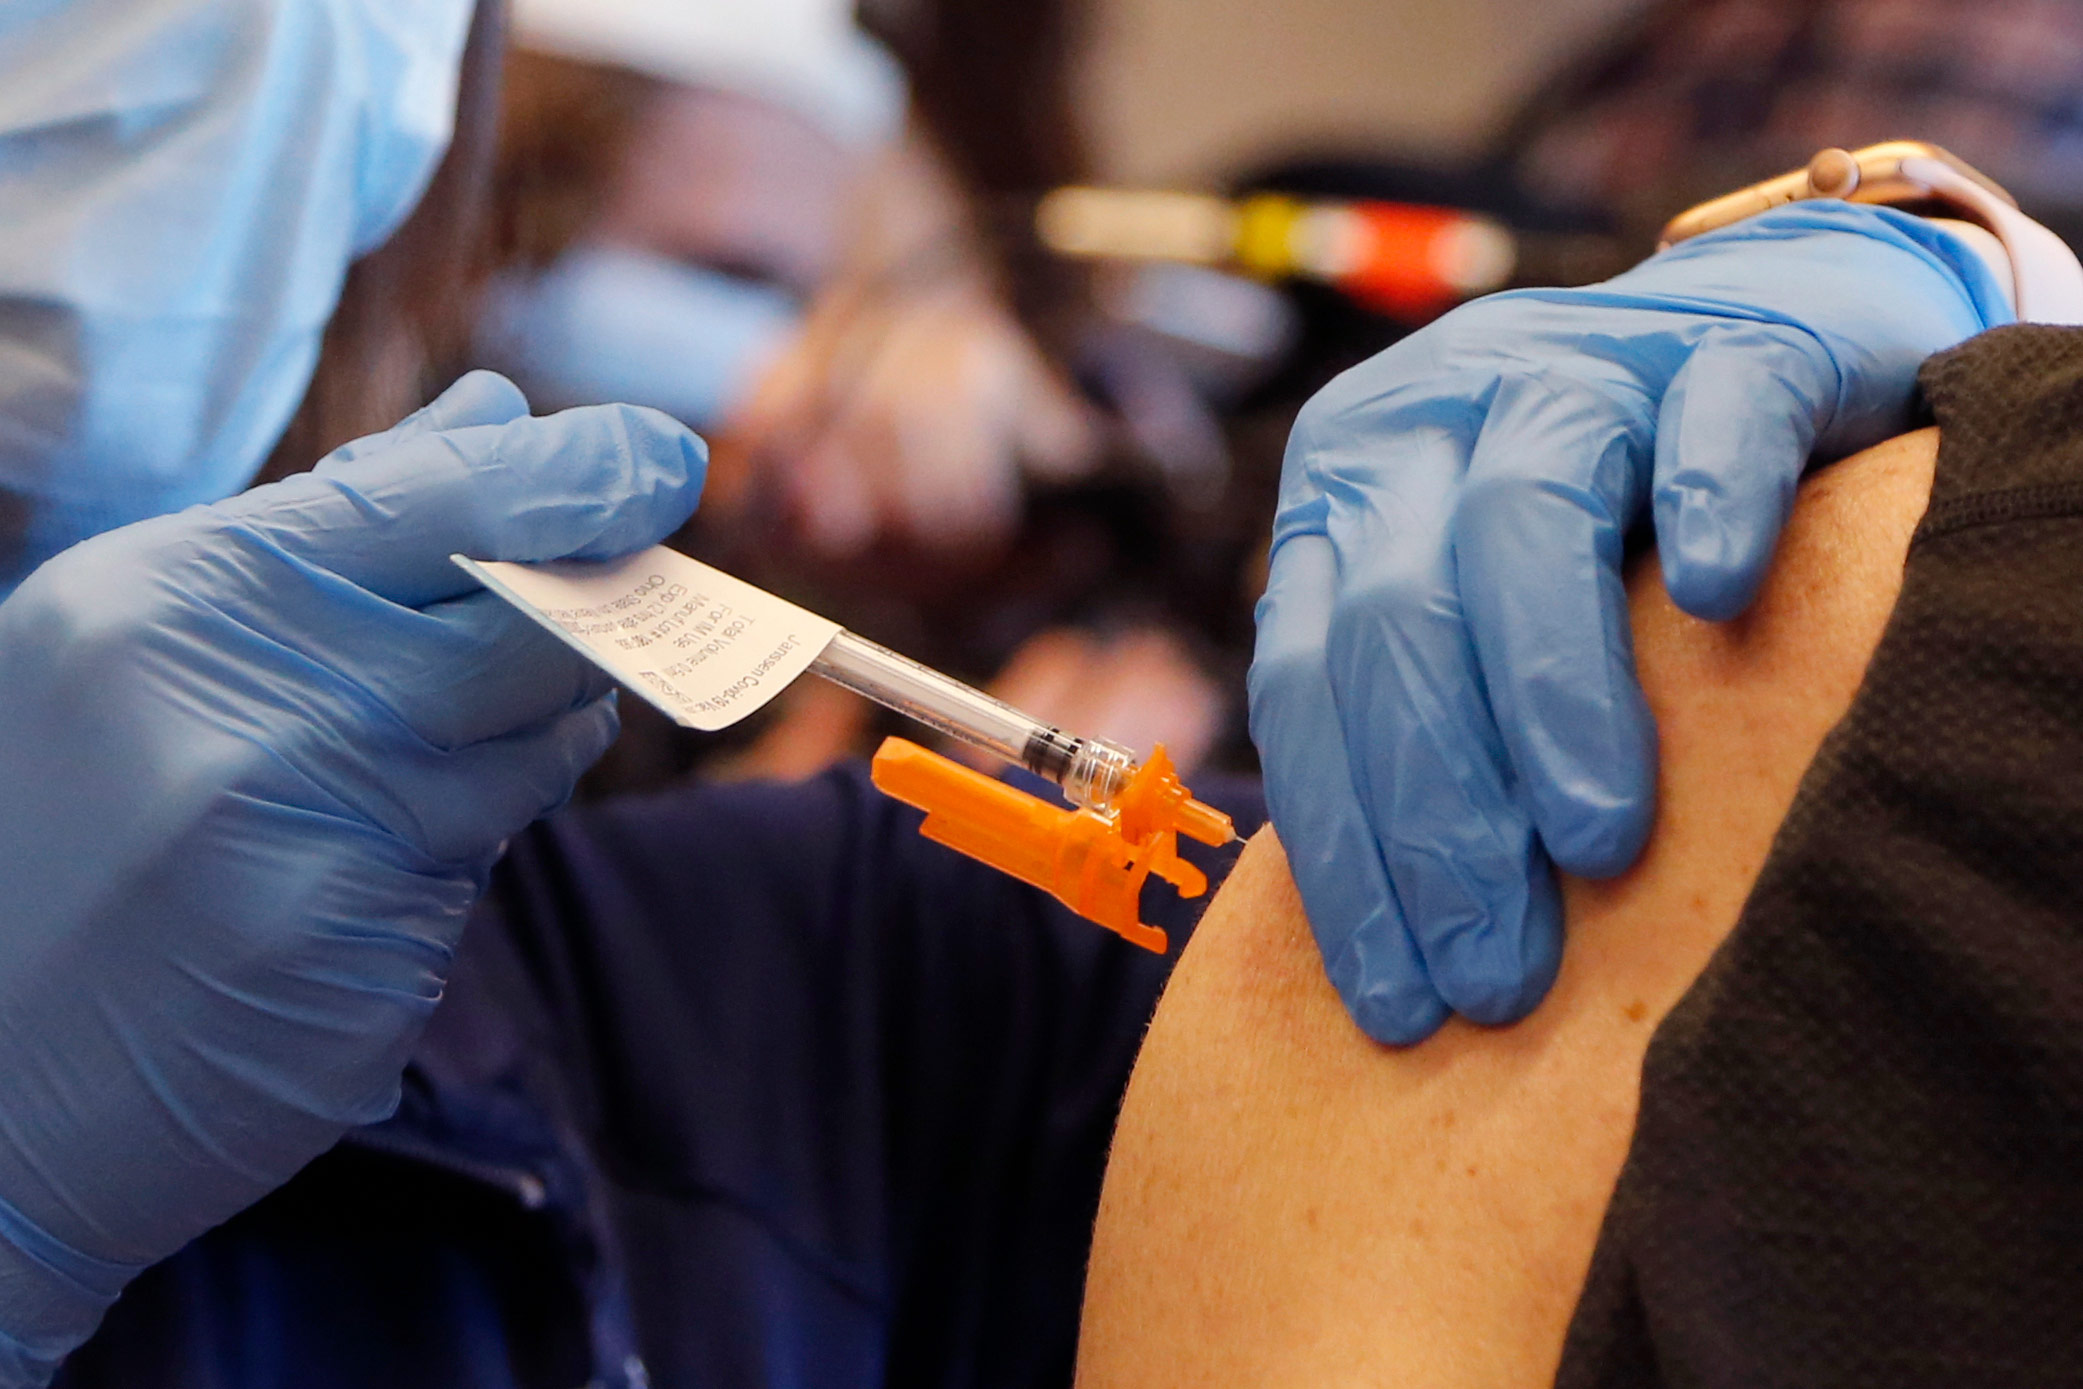 States shift to vaccinate those in their 50s against Covid-19 as supply expands